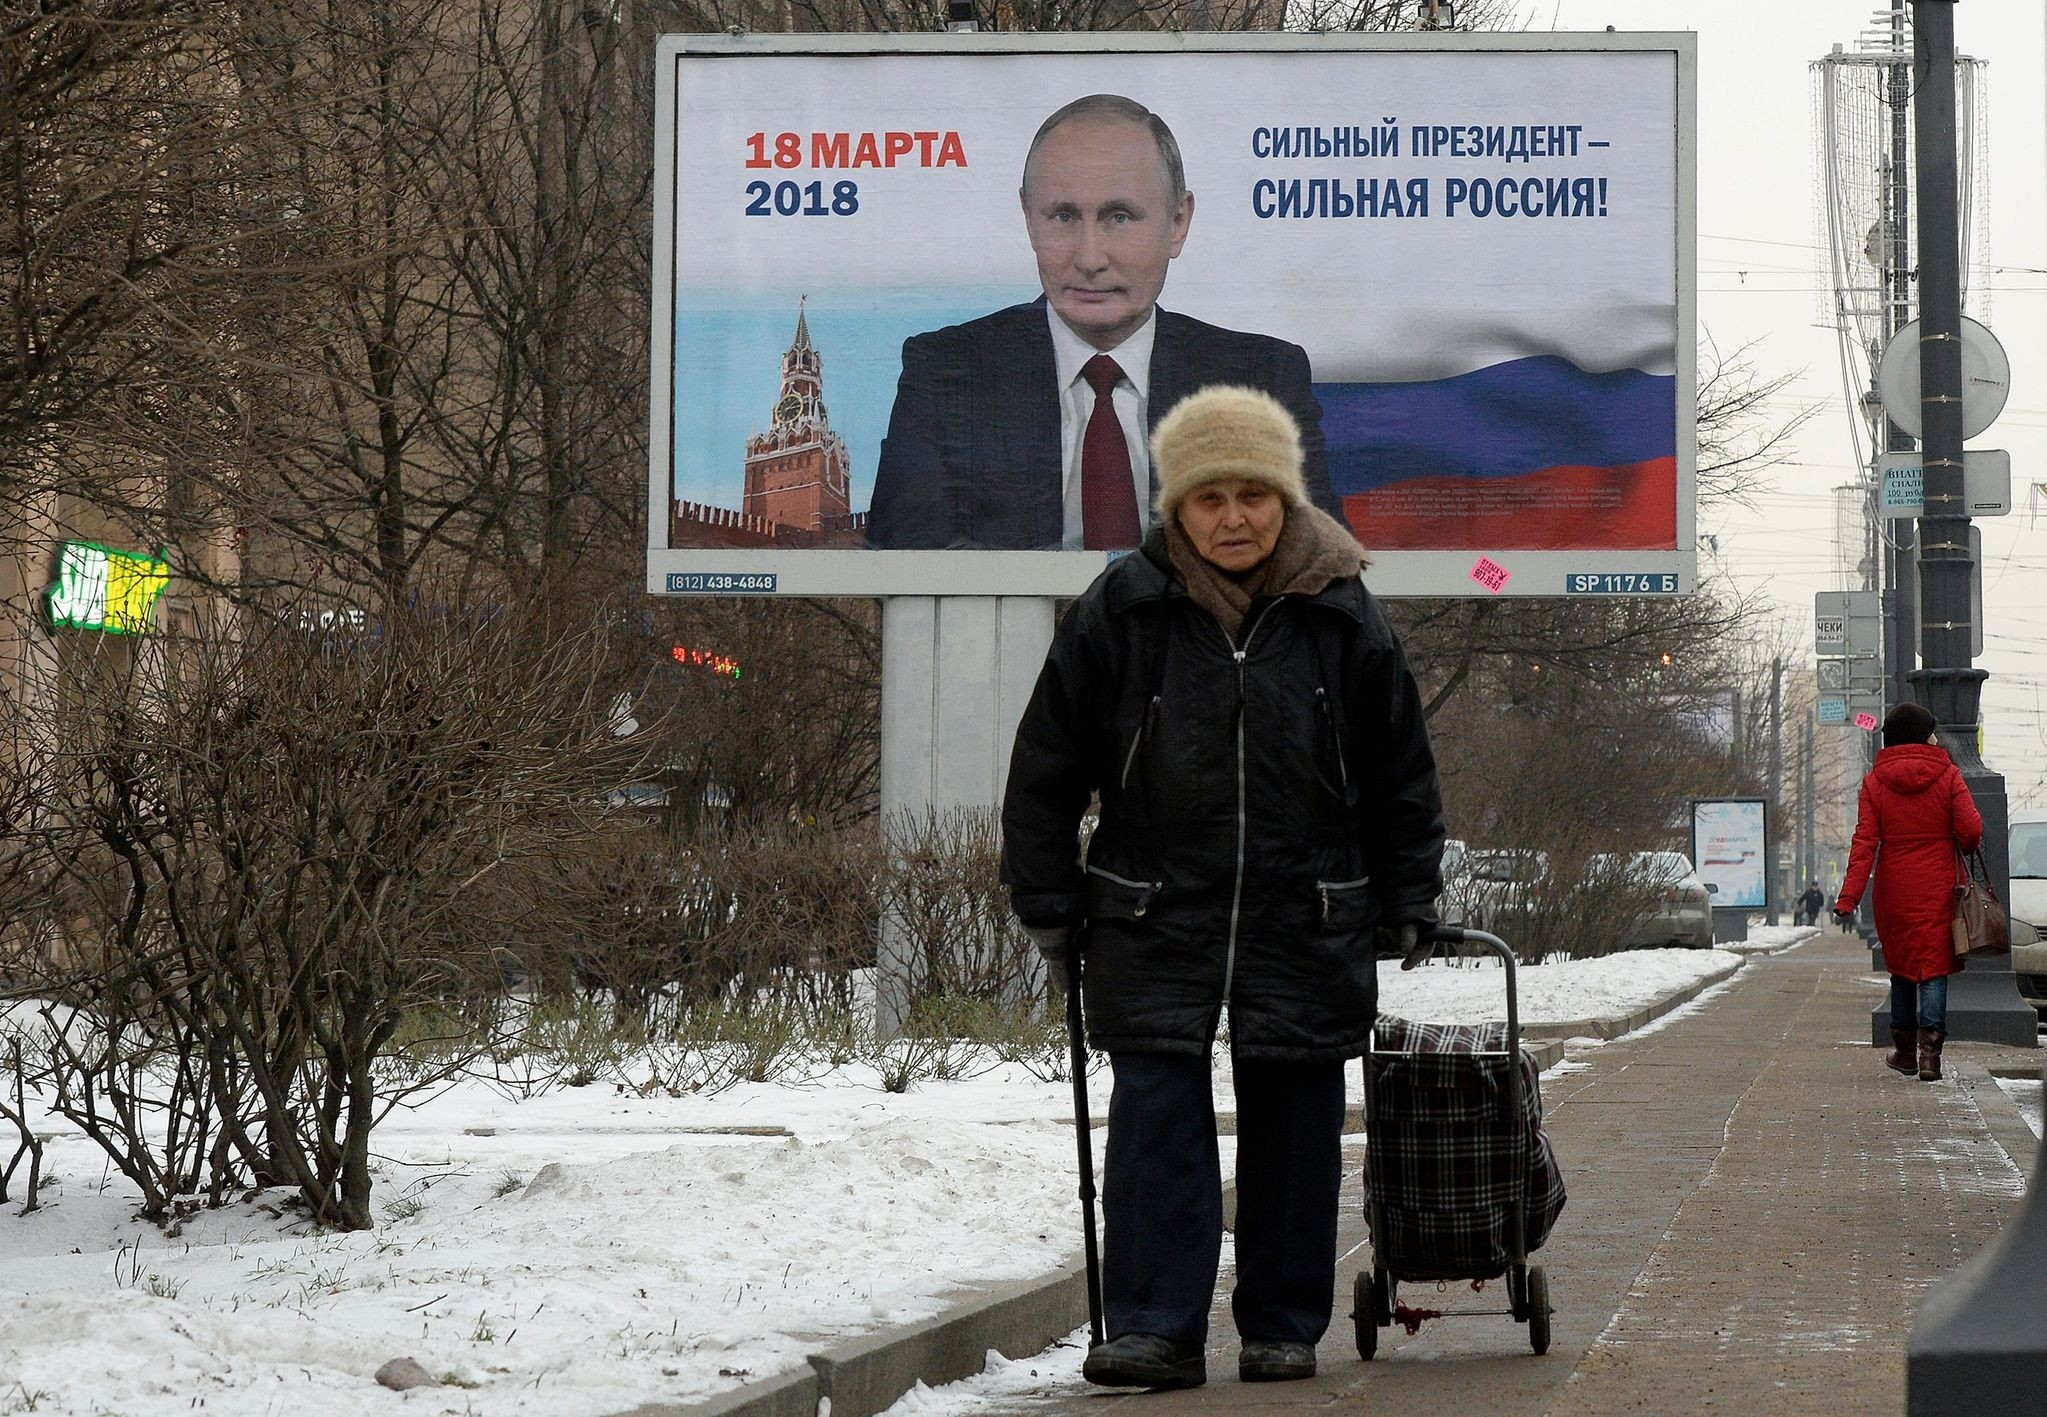 A billboard with an image of Russian President Vladimir Putin that says: u201cStrong president - Strong Russia!u201d Saint Petersburg, Jan. 12, 2018.